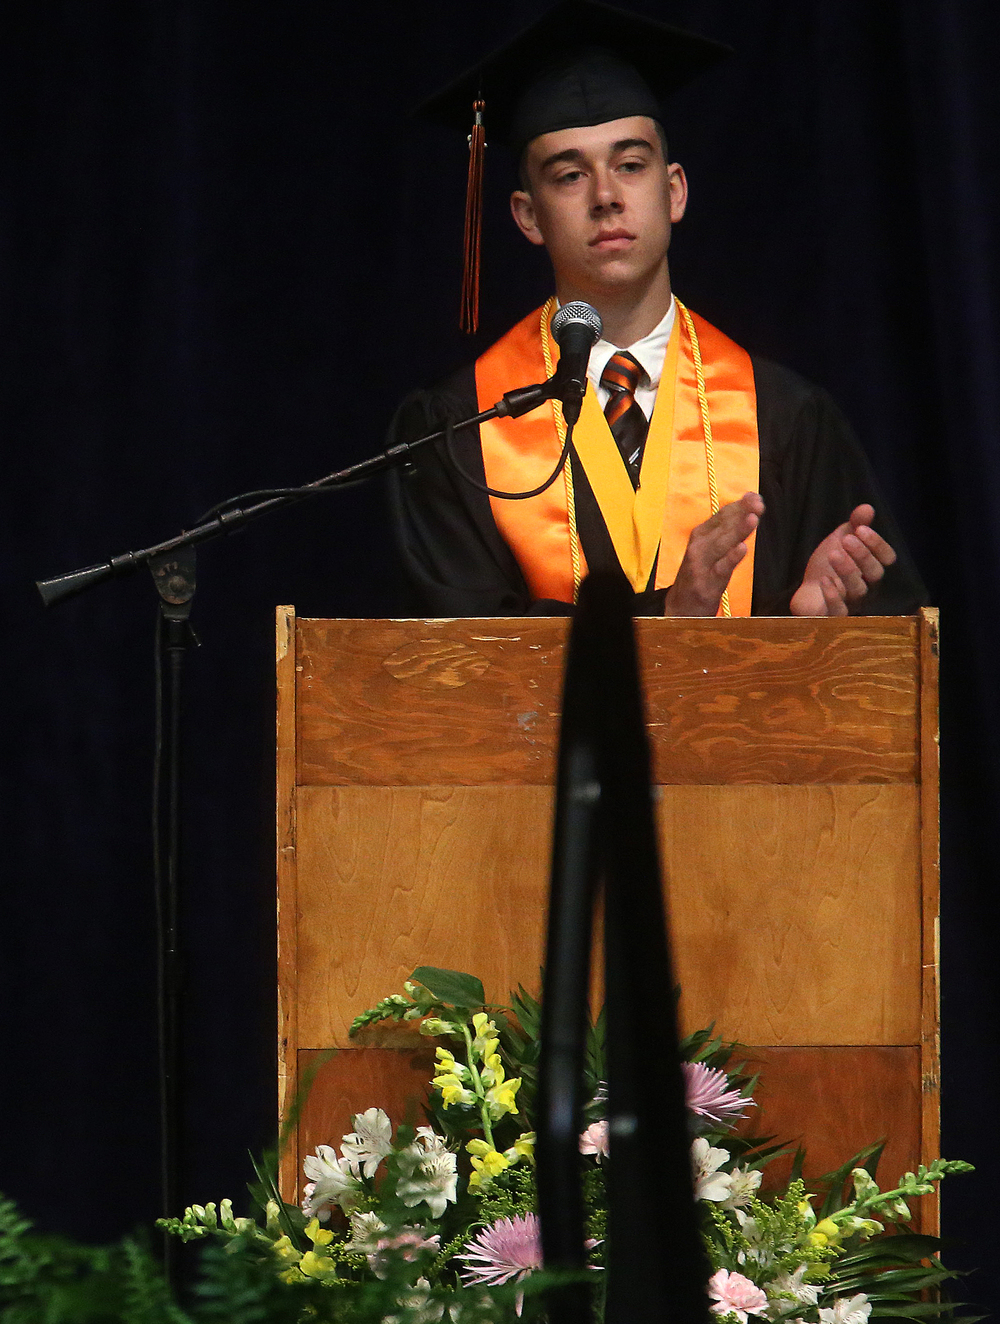 Lanphier Valedictorian Thomas Dane Jr. acknowledged the audience while speaking Saturday morning. David Spencer/The State Journal- Register